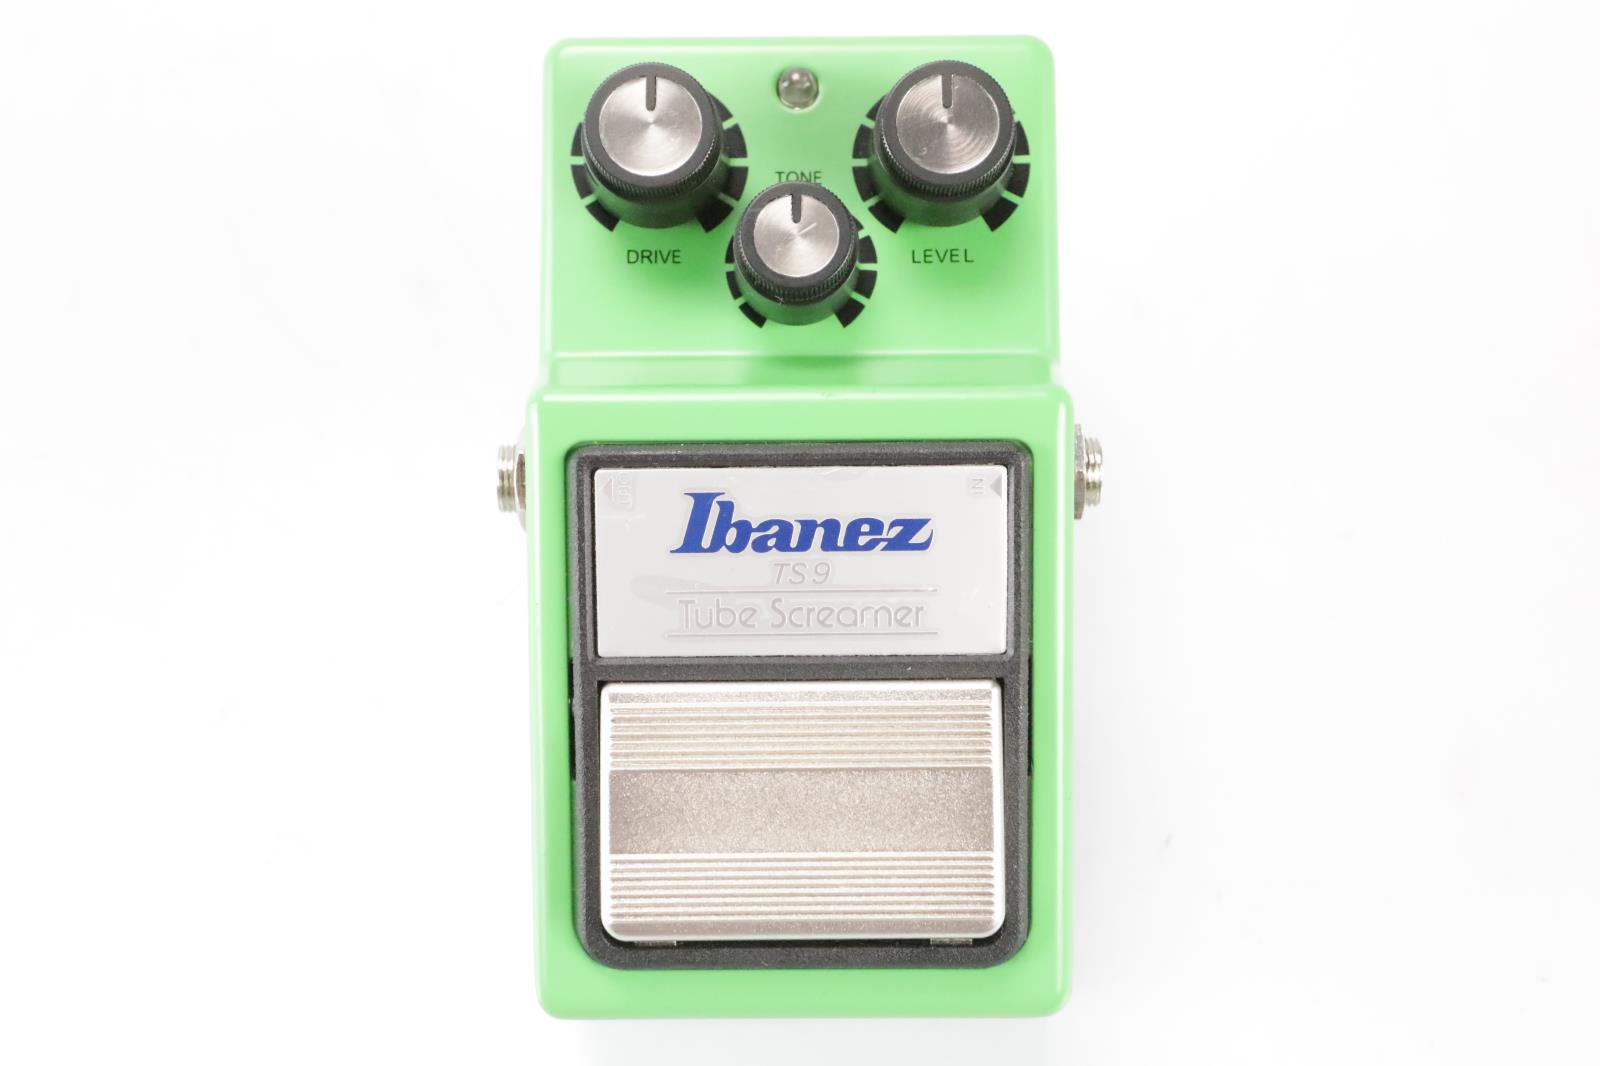 Details about Ibanez TS9 Tube Screamer Overdrive Guitar Effect Pedal #35517